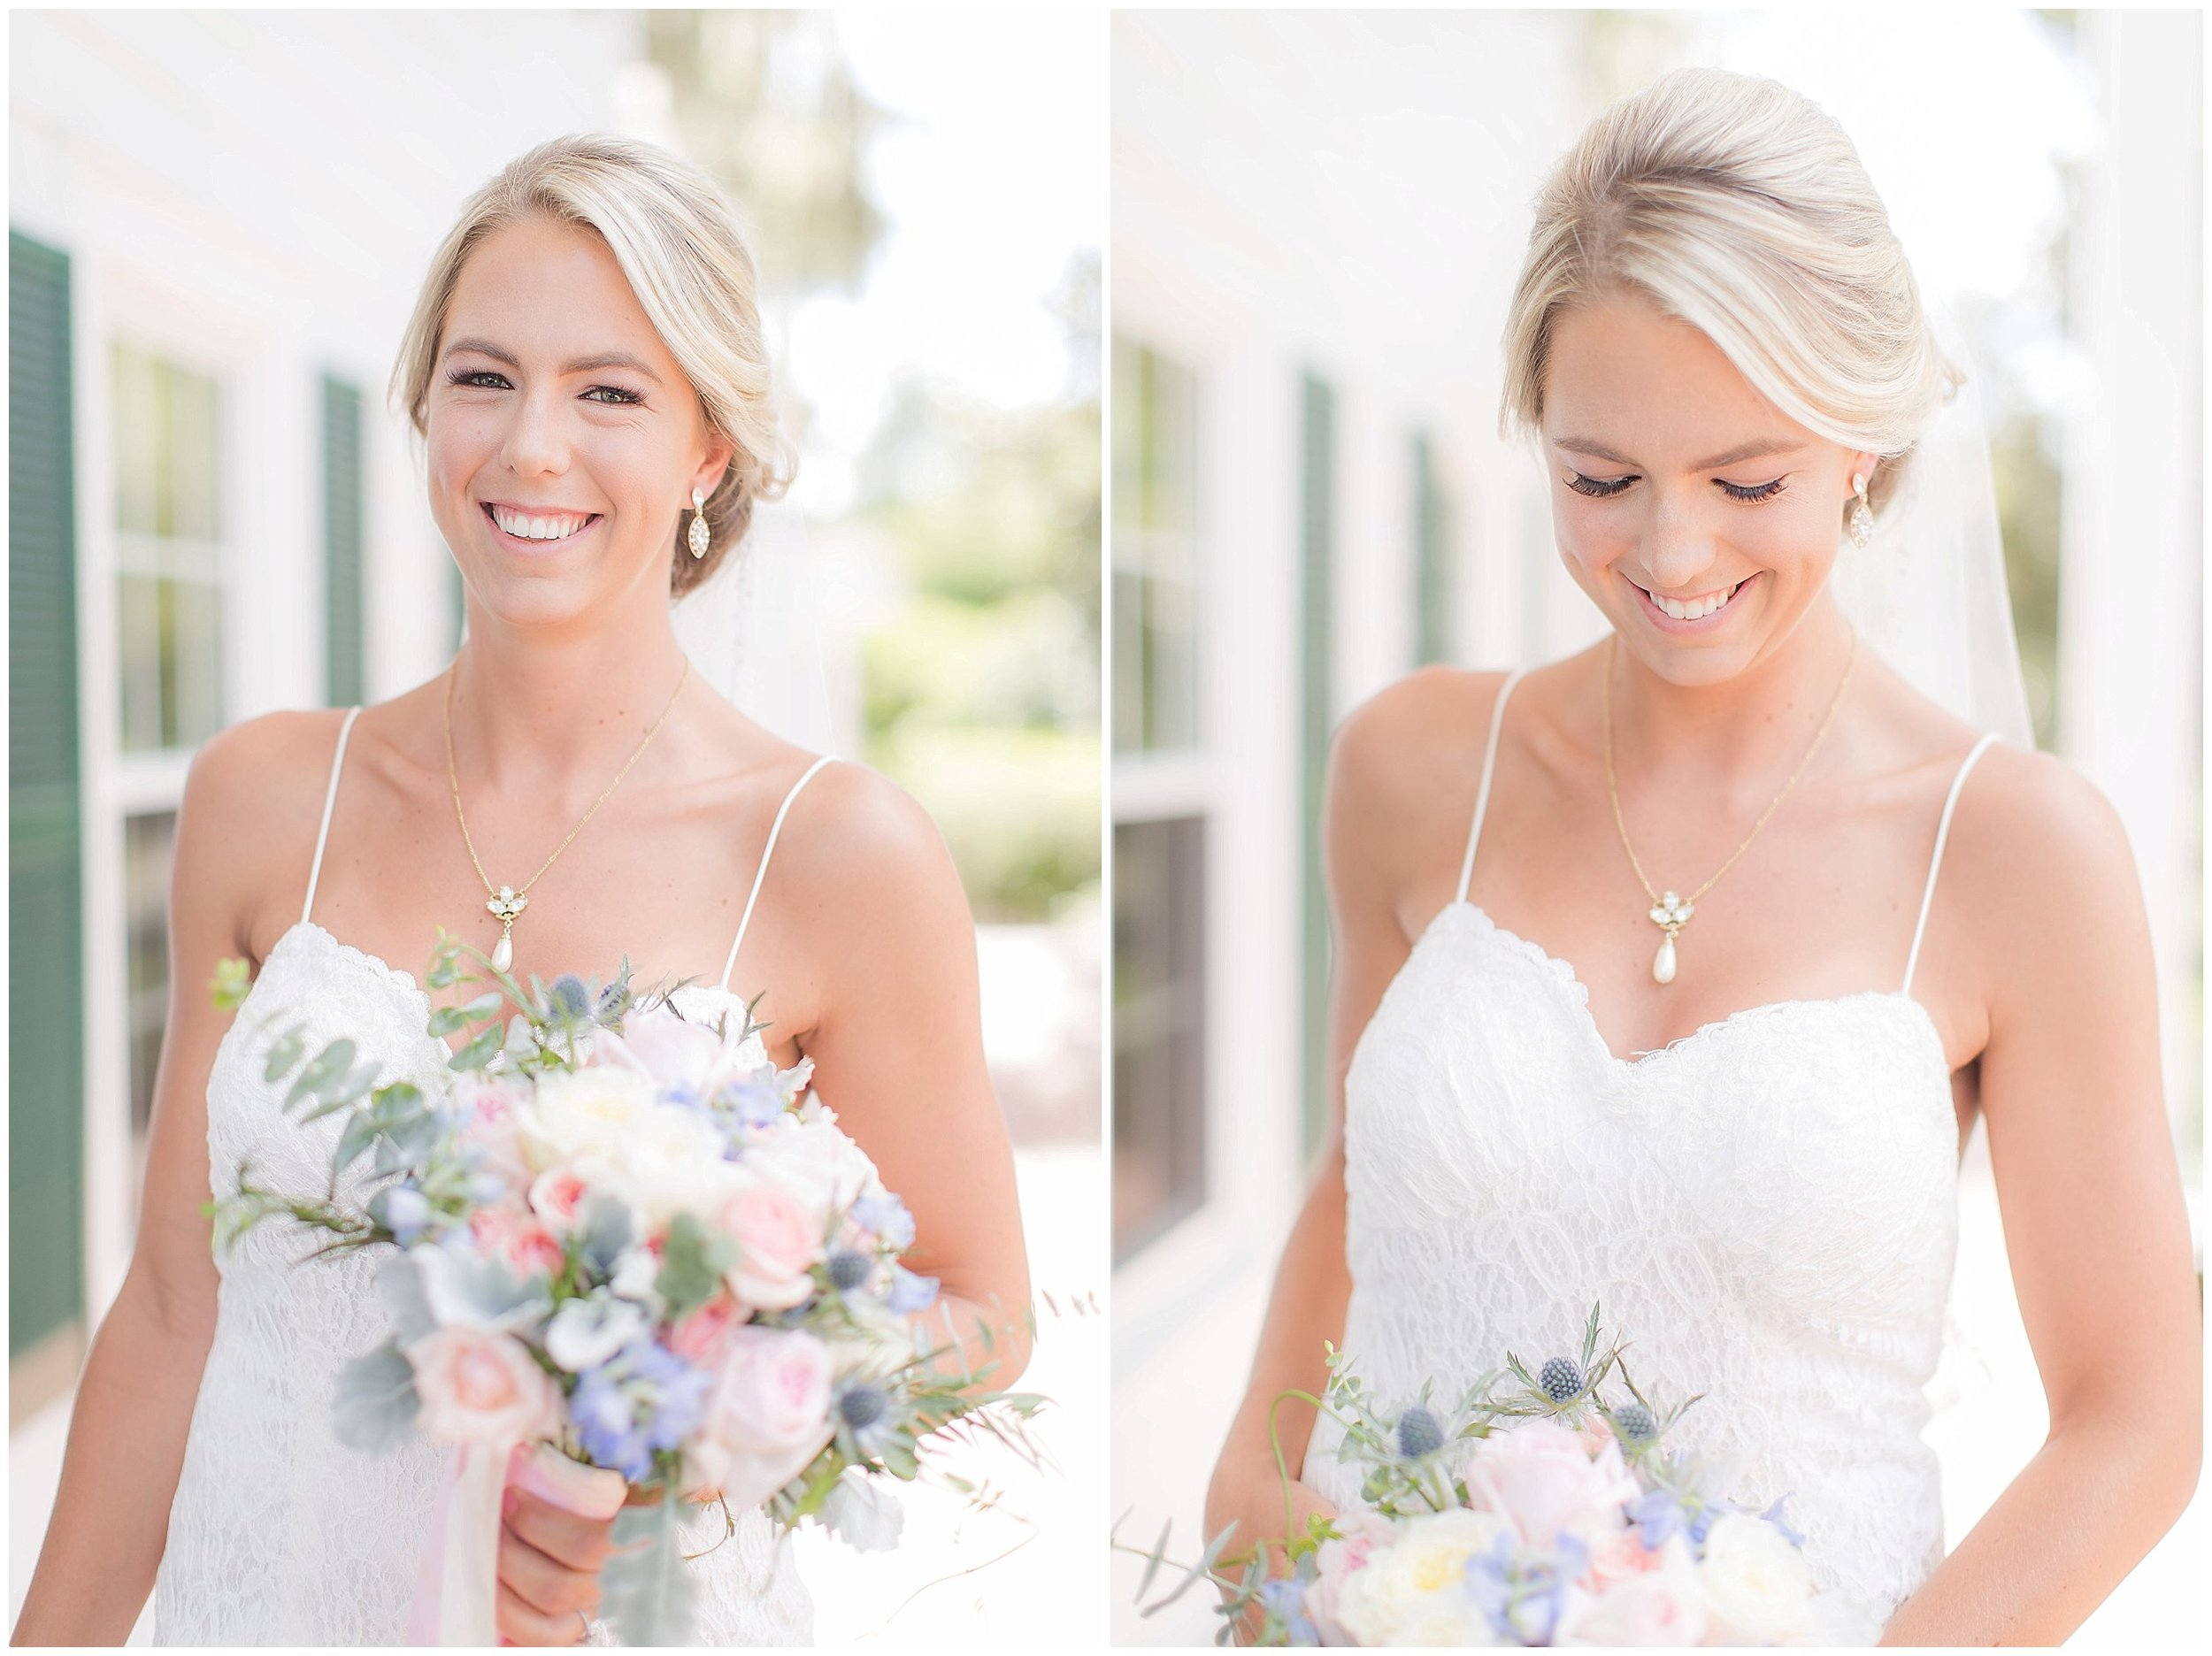 Bridal Portraits with dusty blue and blush florals